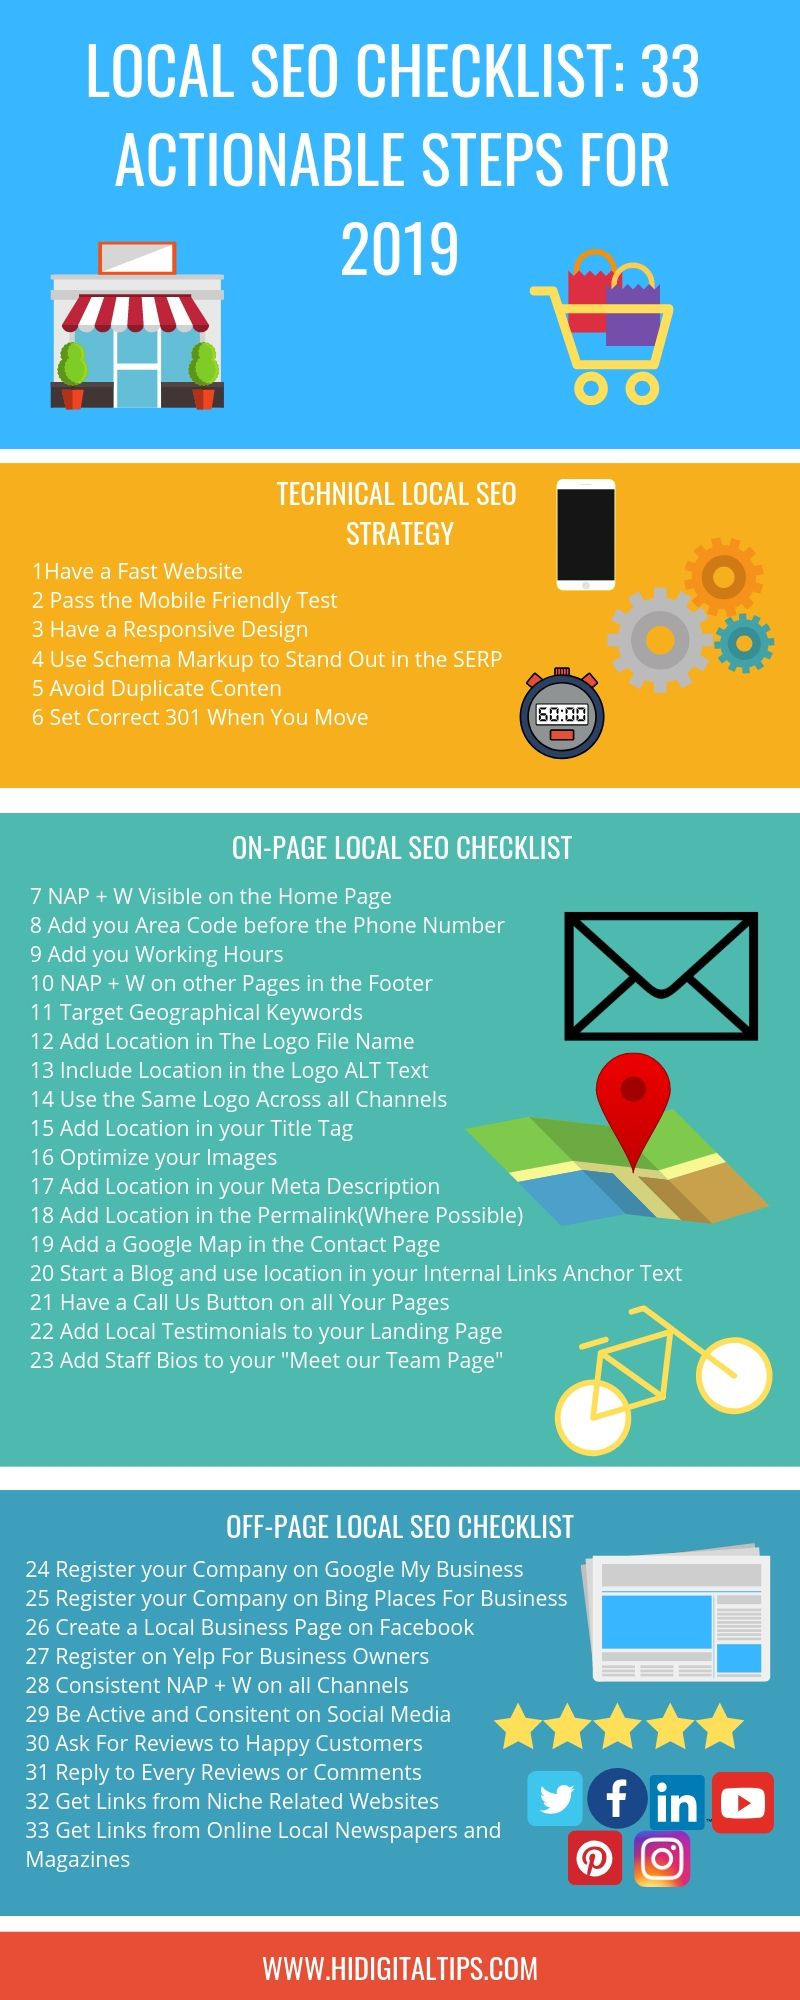 Local Seo Checklist 2019 33 Actionable Steps Infographic